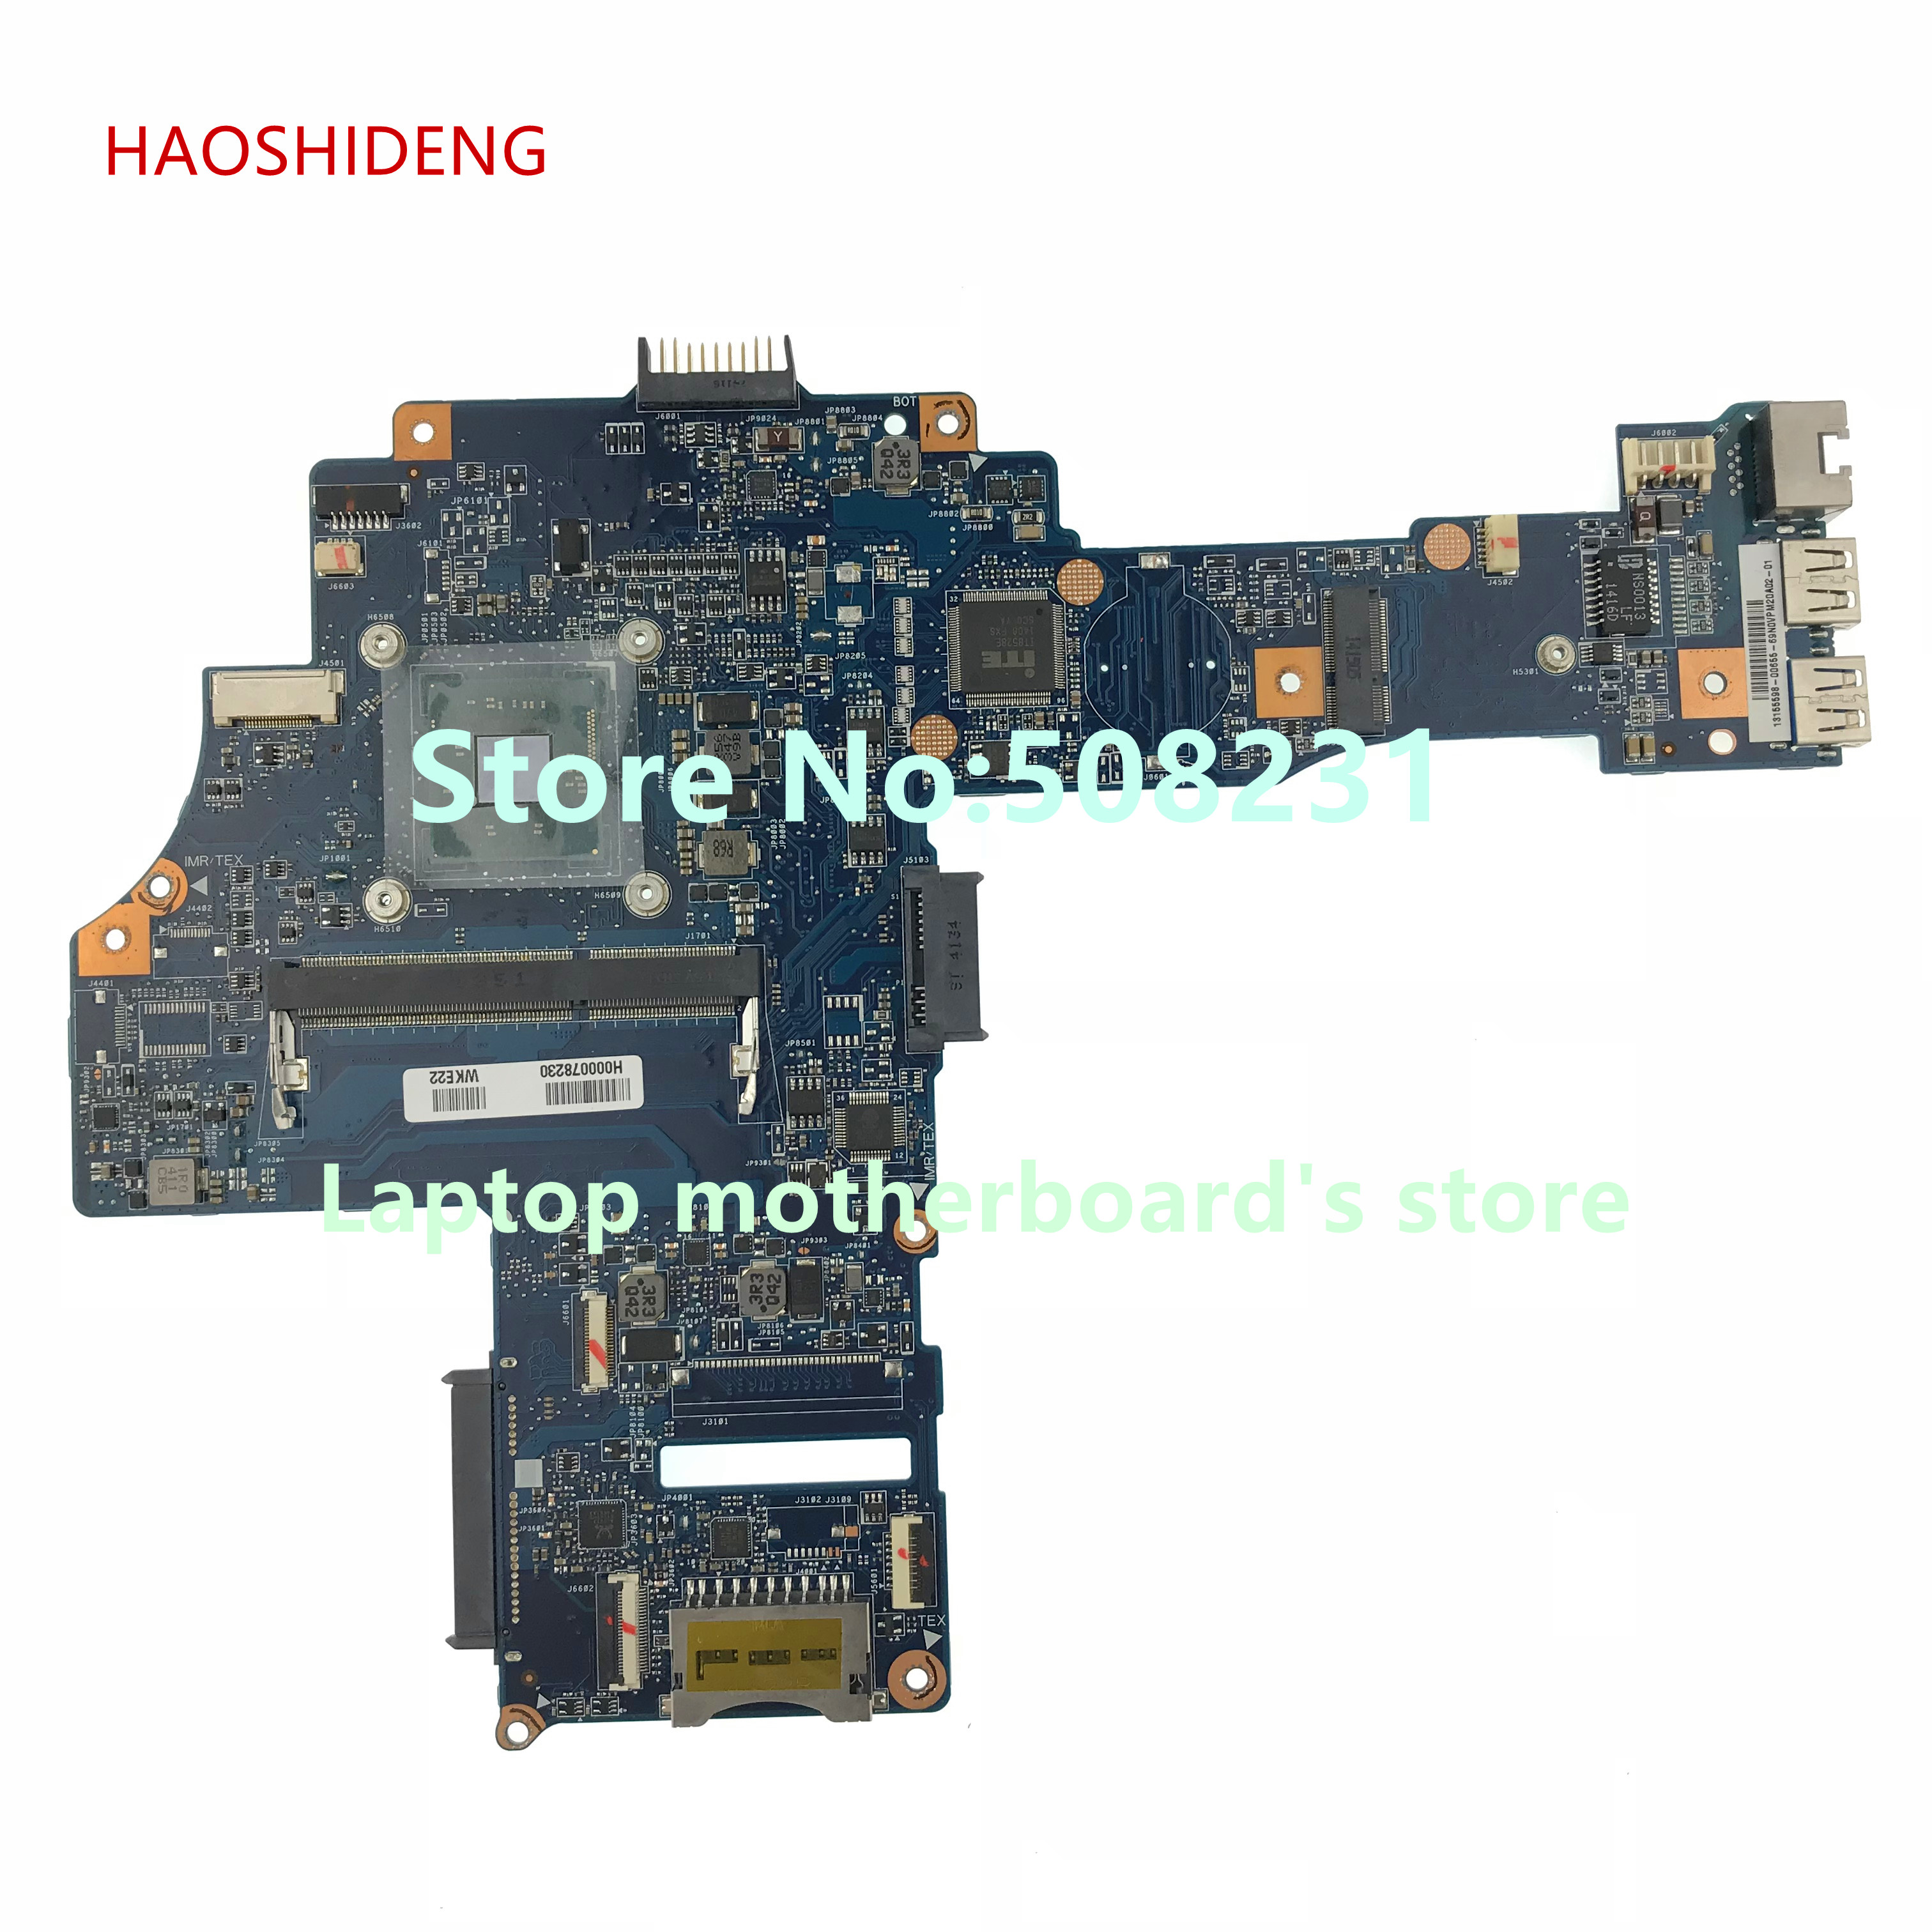 HAOSHIDENG H000078230 CA10BM Main Board for Toshiba Satellite C40-B series laptop motherboard with N2830 fully Tested